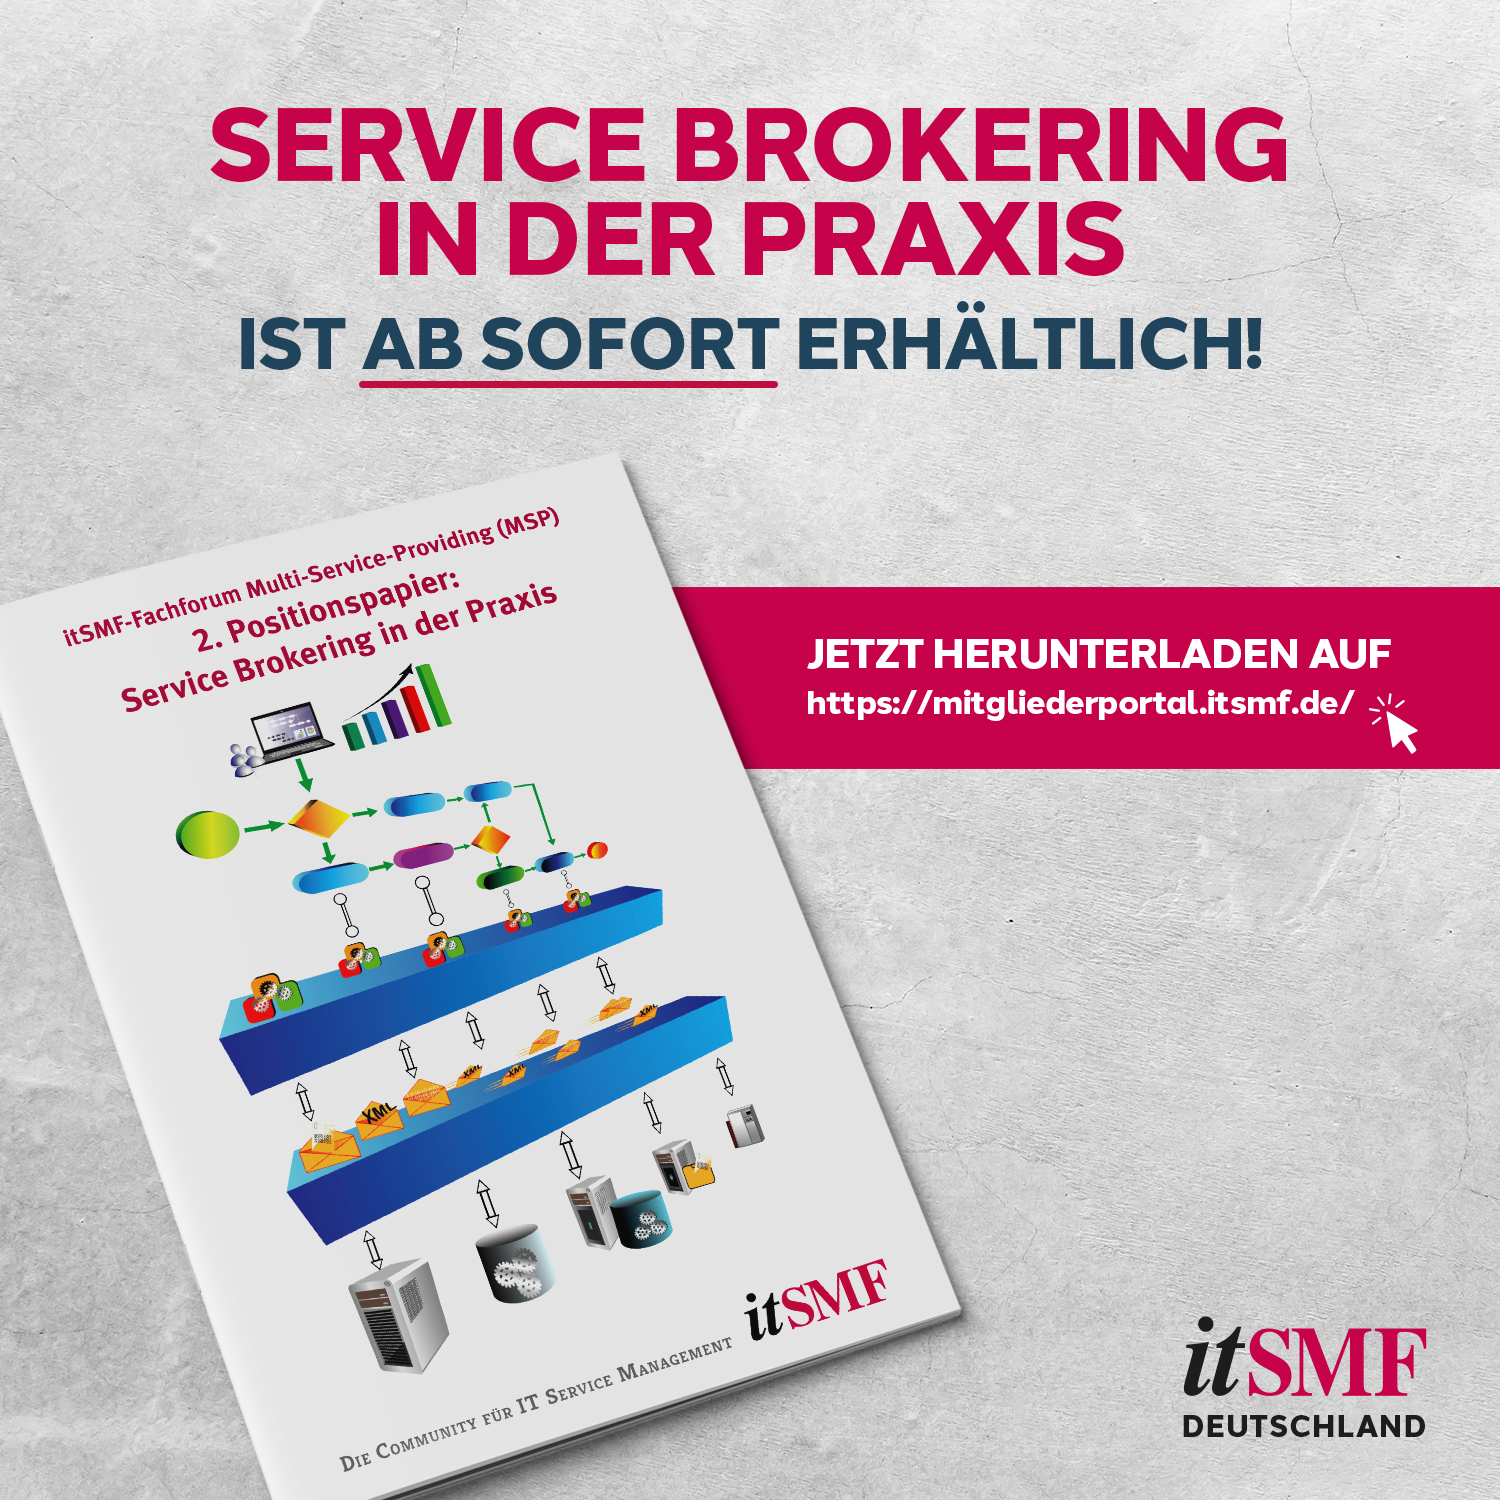 Service Brokering in der Praxis